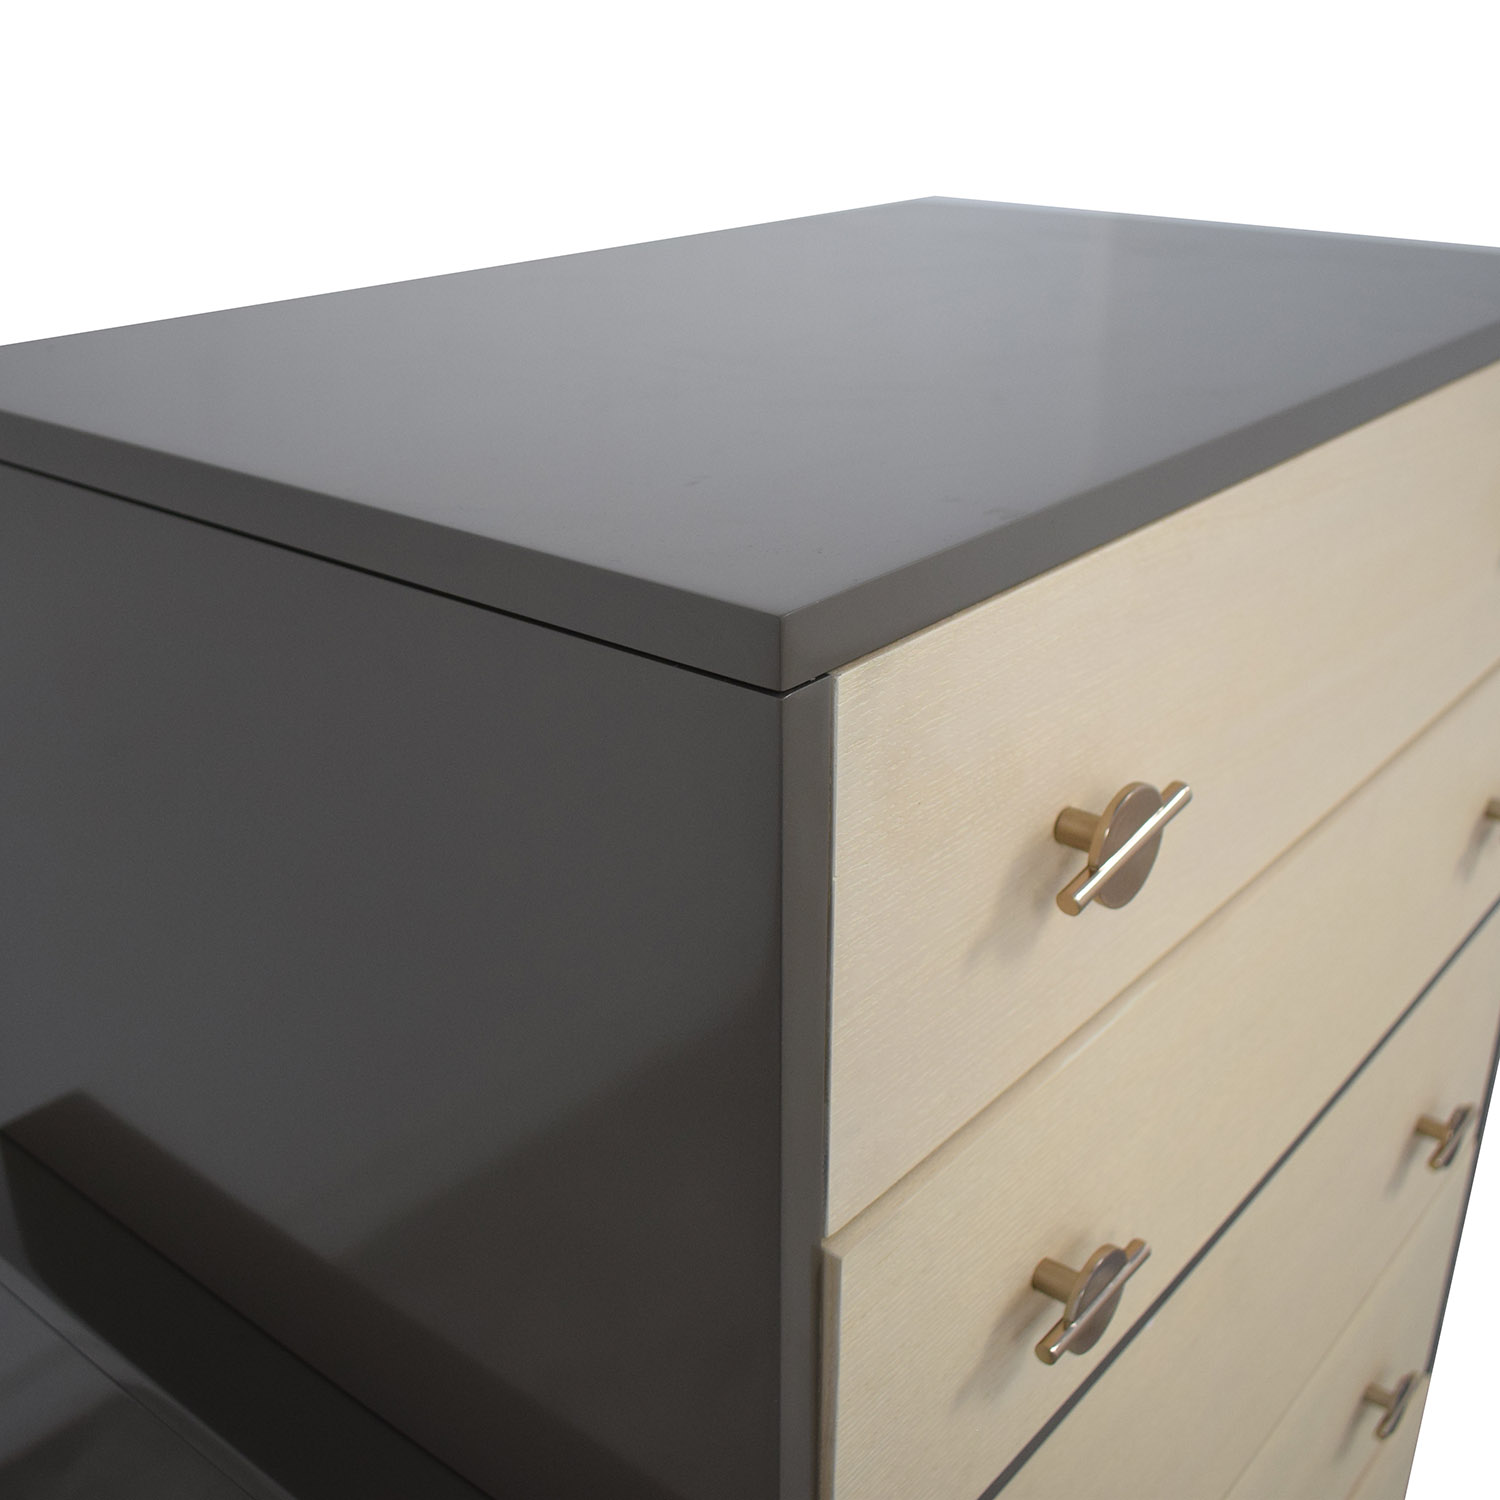 West Elm West Elm Greta 5-Drawer Dresser for sale